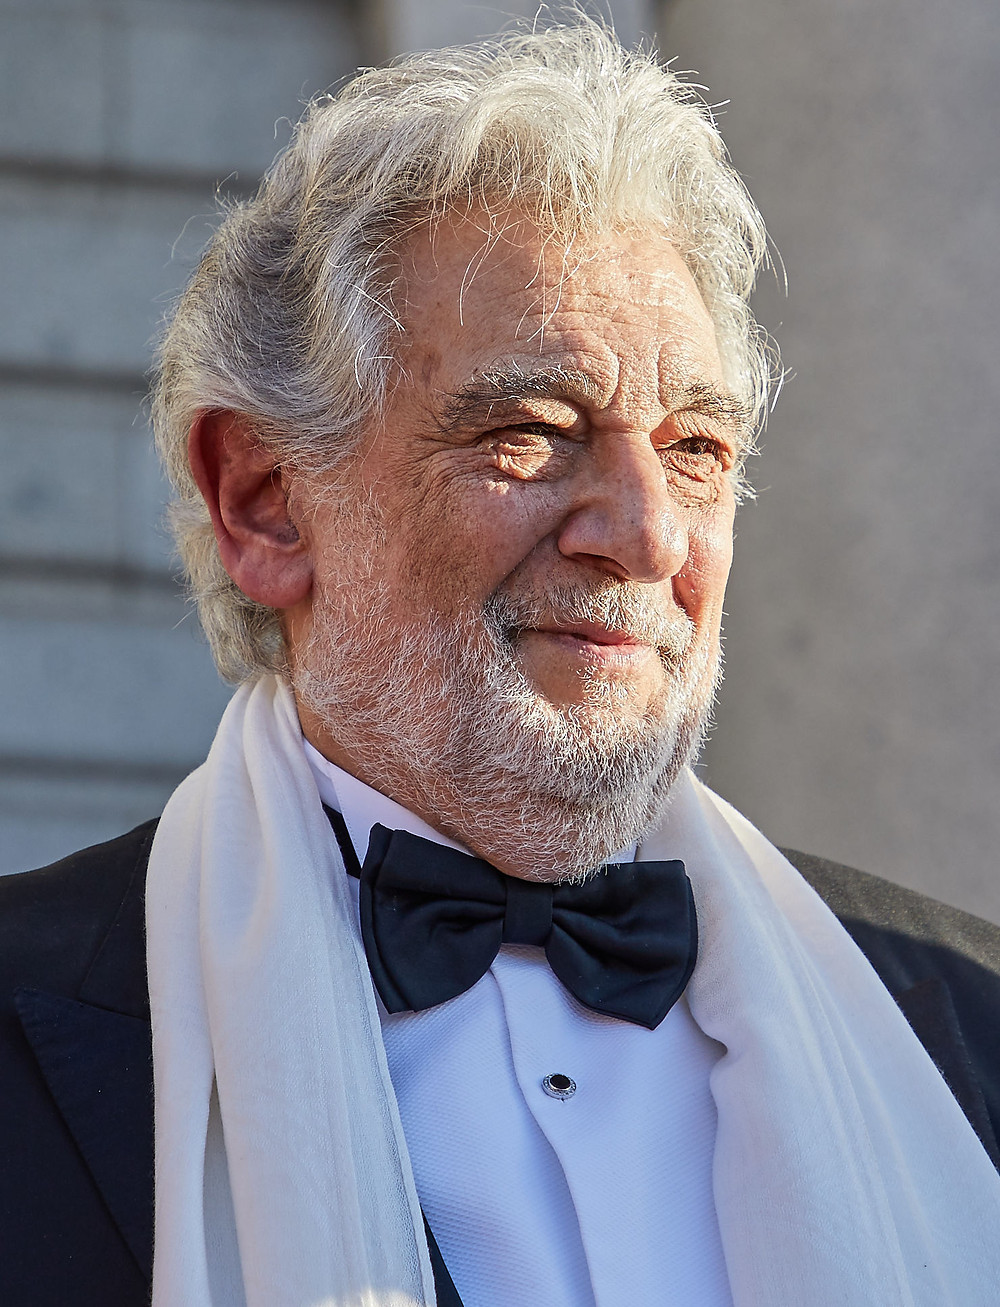 Plácido Domingo departs Met Opera over sexual harassment claims Worldwide Breaking News